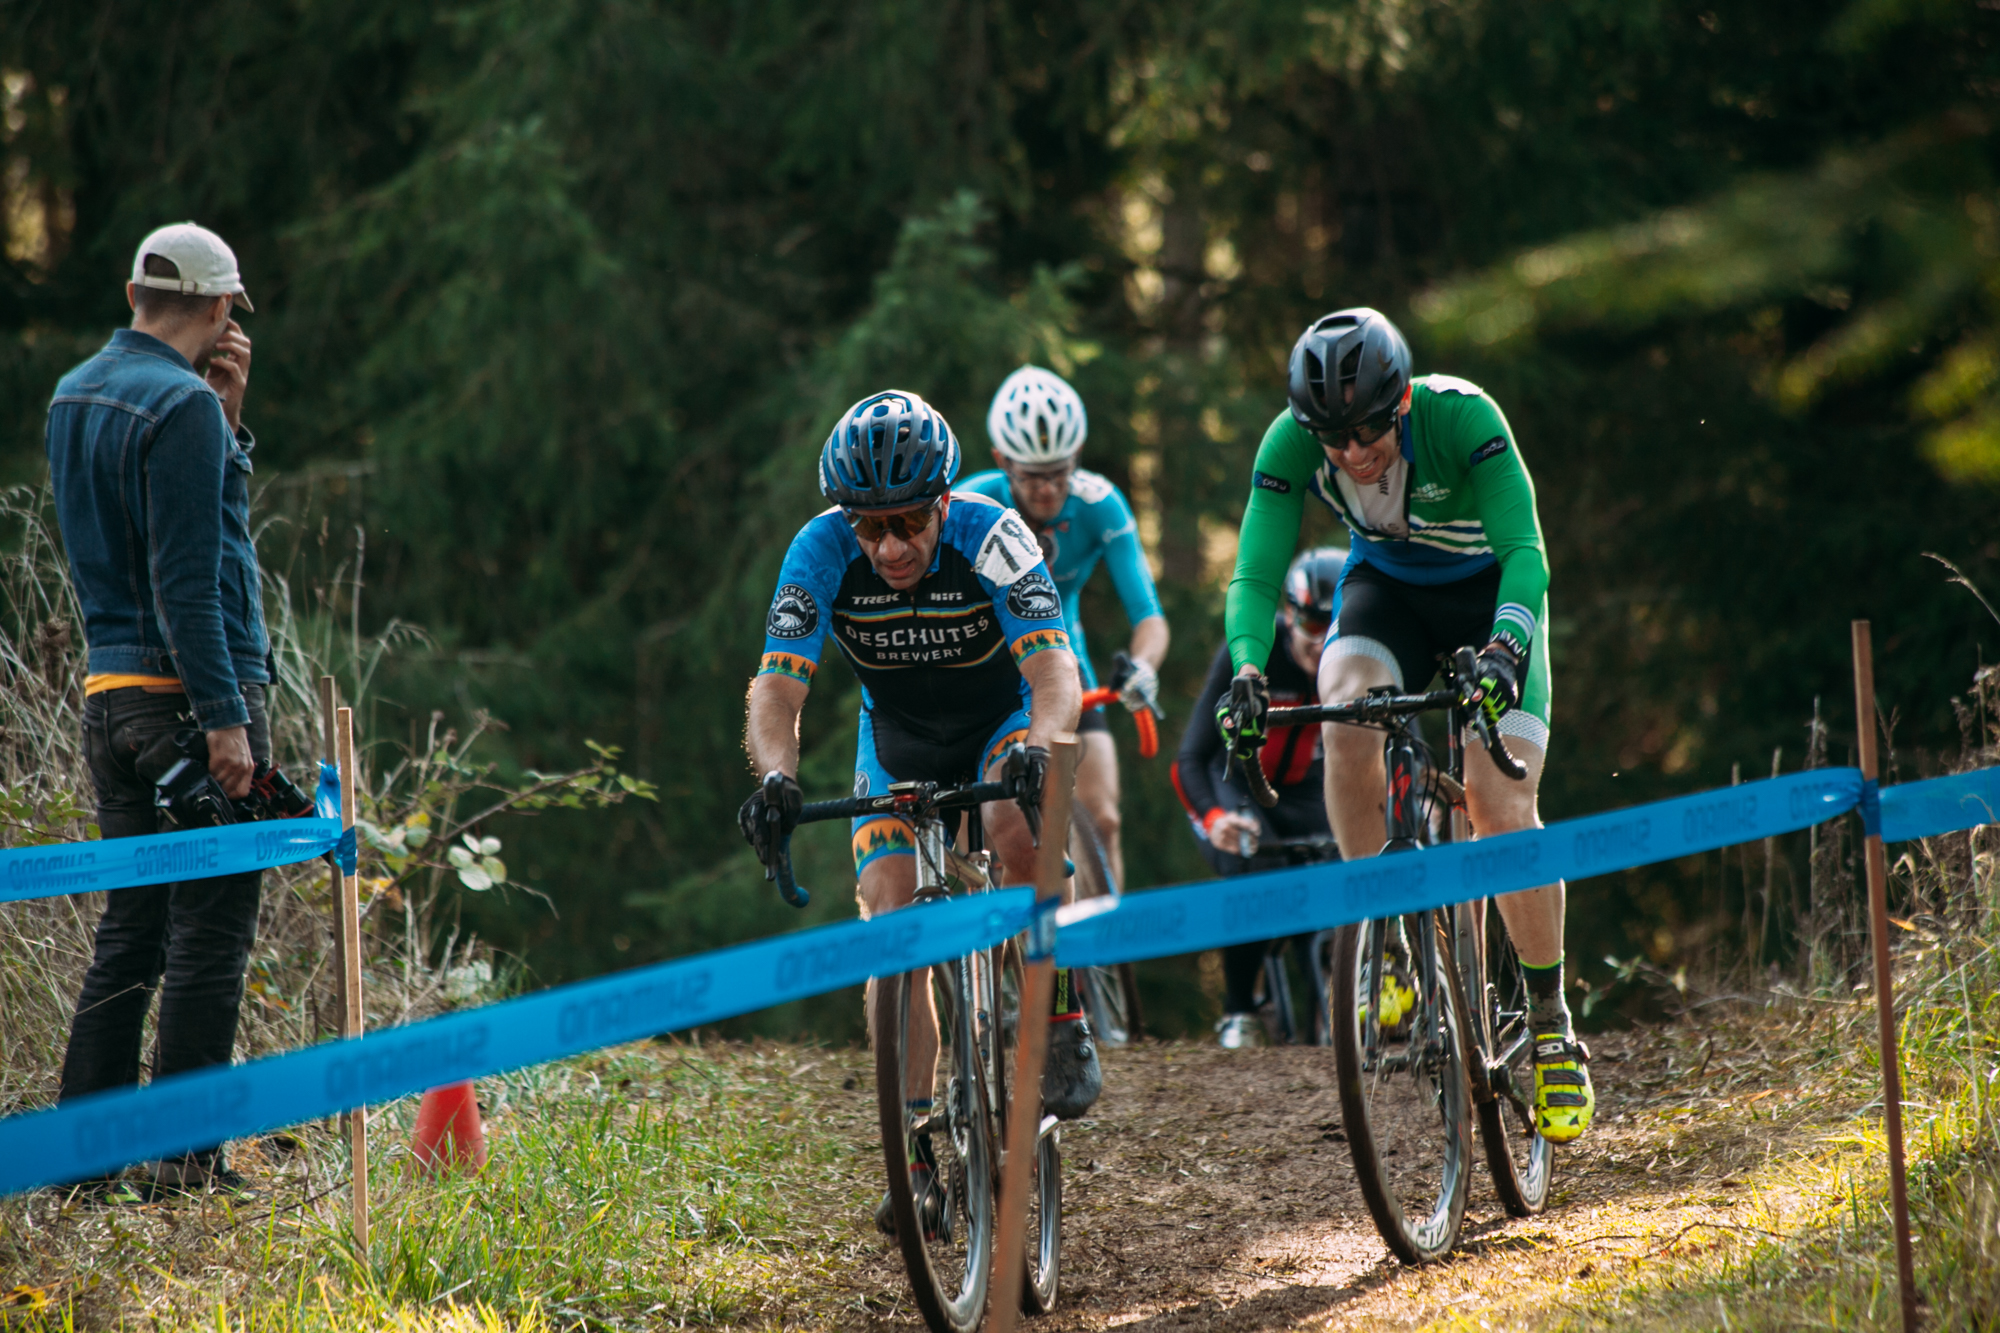 Cyclocross18_CCCX_RainierHS-125-mettlecycling.jpg